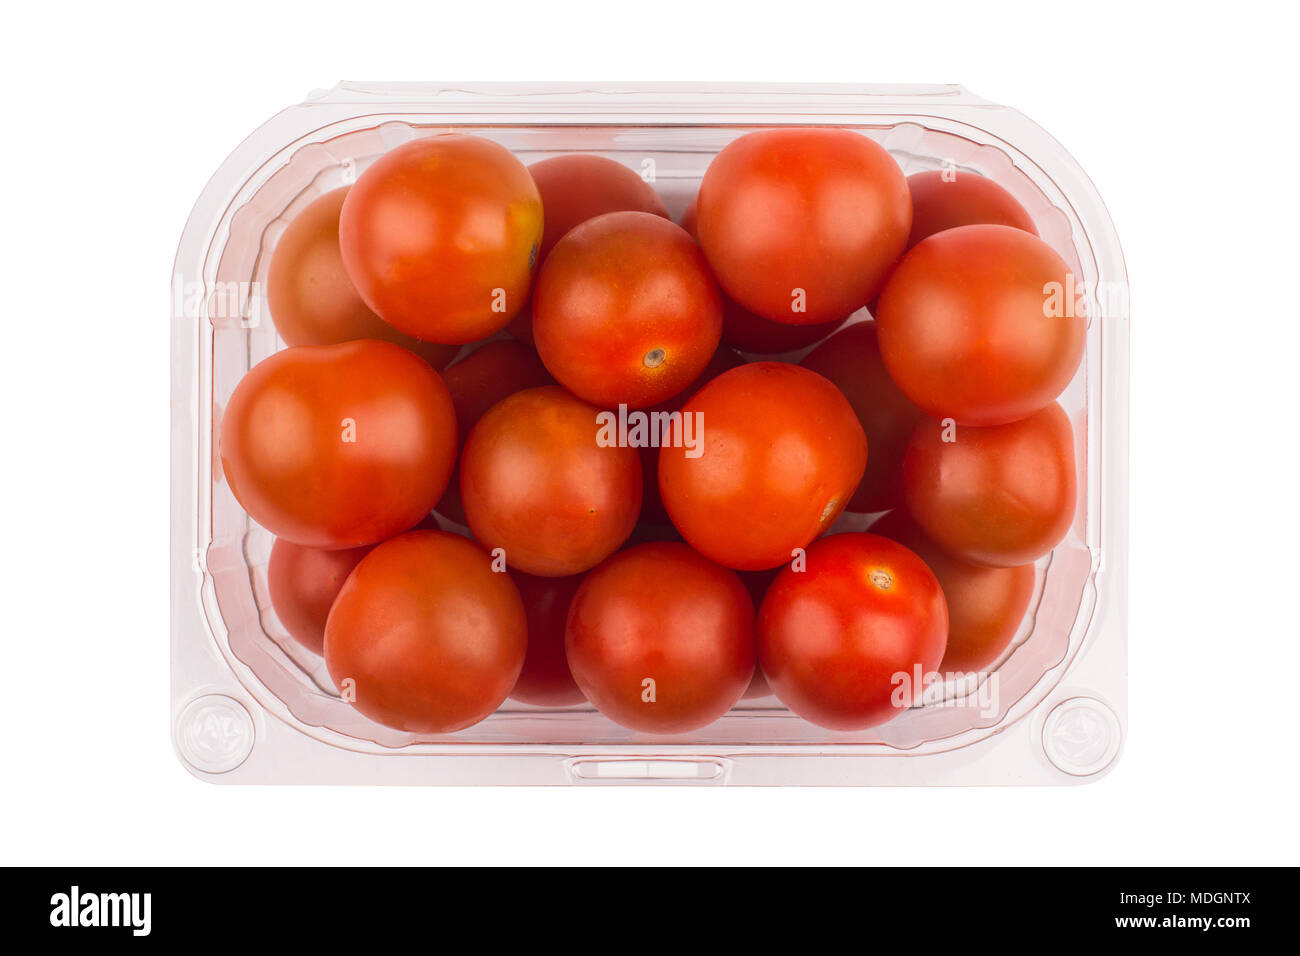 top view closeup detail of red cherry tomatoes in open plastic transparent packaging container isolated on white background - Stock Image